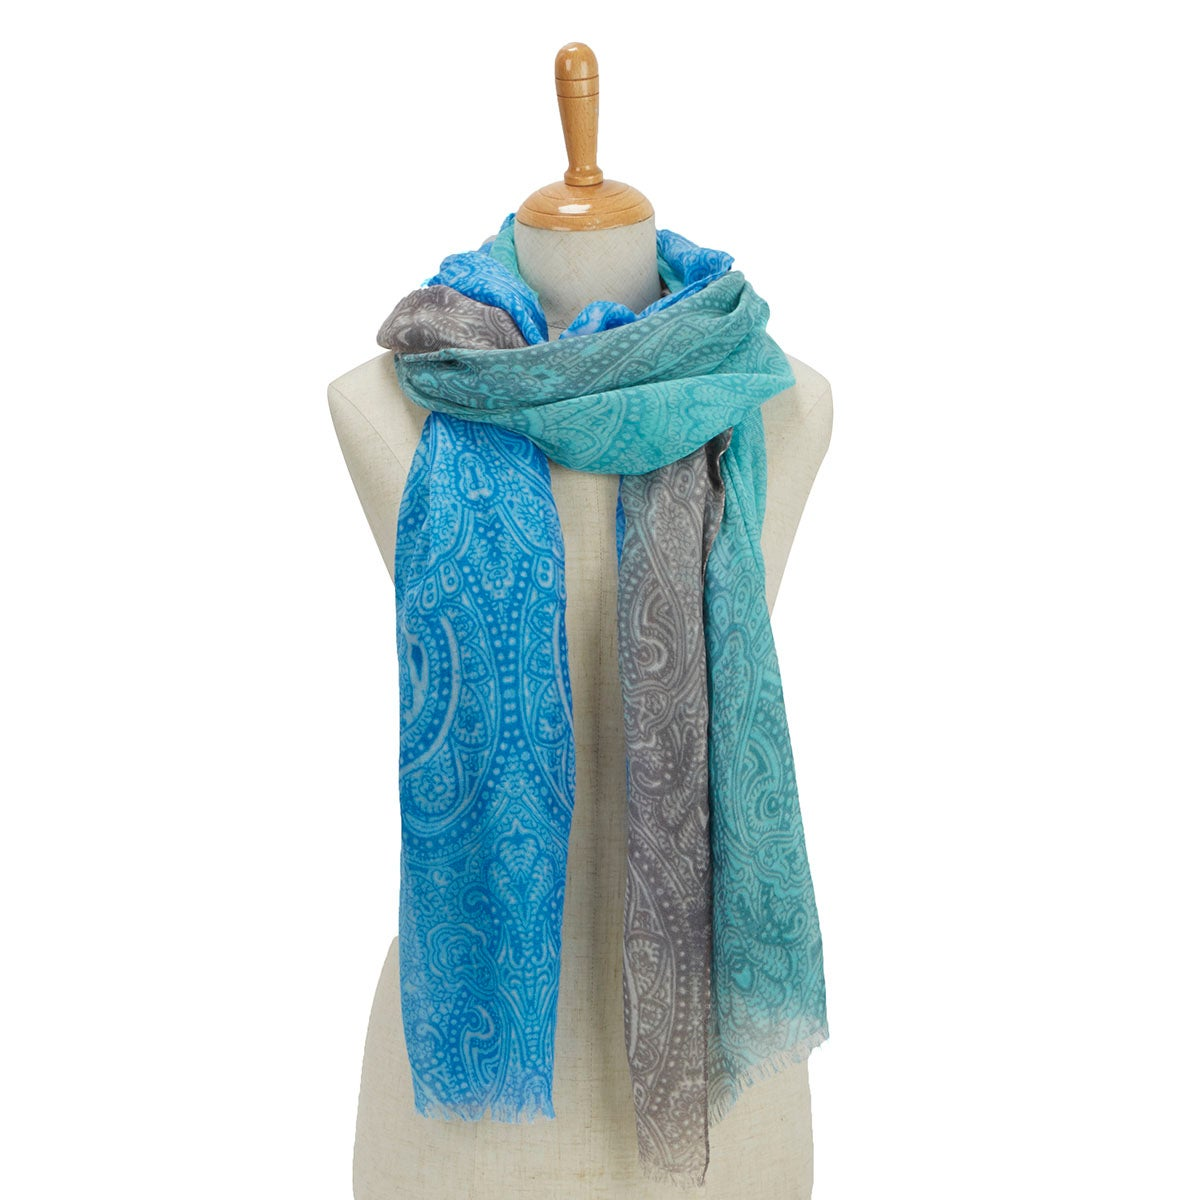 Foulard SimpleTransition Ombre, turq,fem